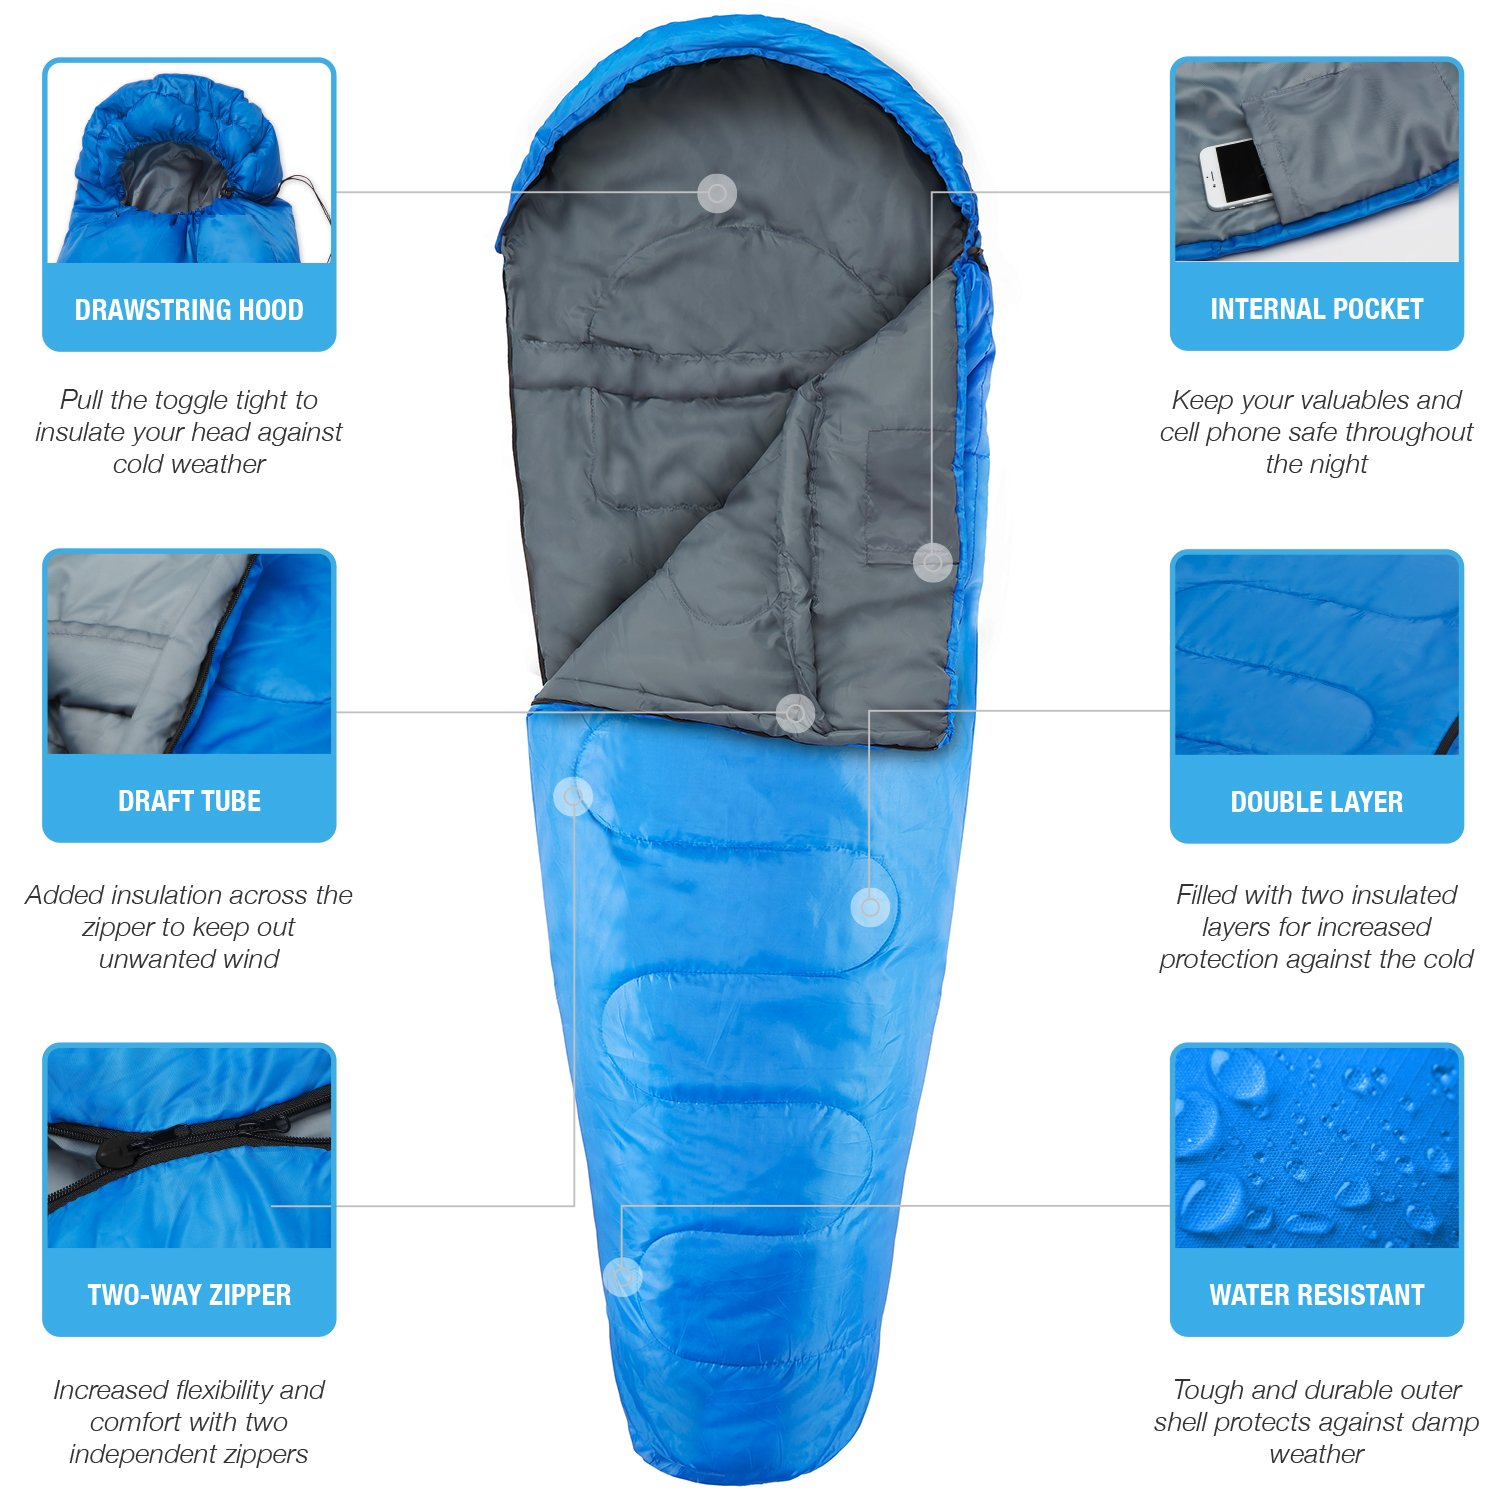 Active Era Mummy Sleeping Bag with Compression Sack for 3-4 Season – Lightweight, Water Resistant Warm for Camping, Hiking, Fishing, Traveling and Outdoors